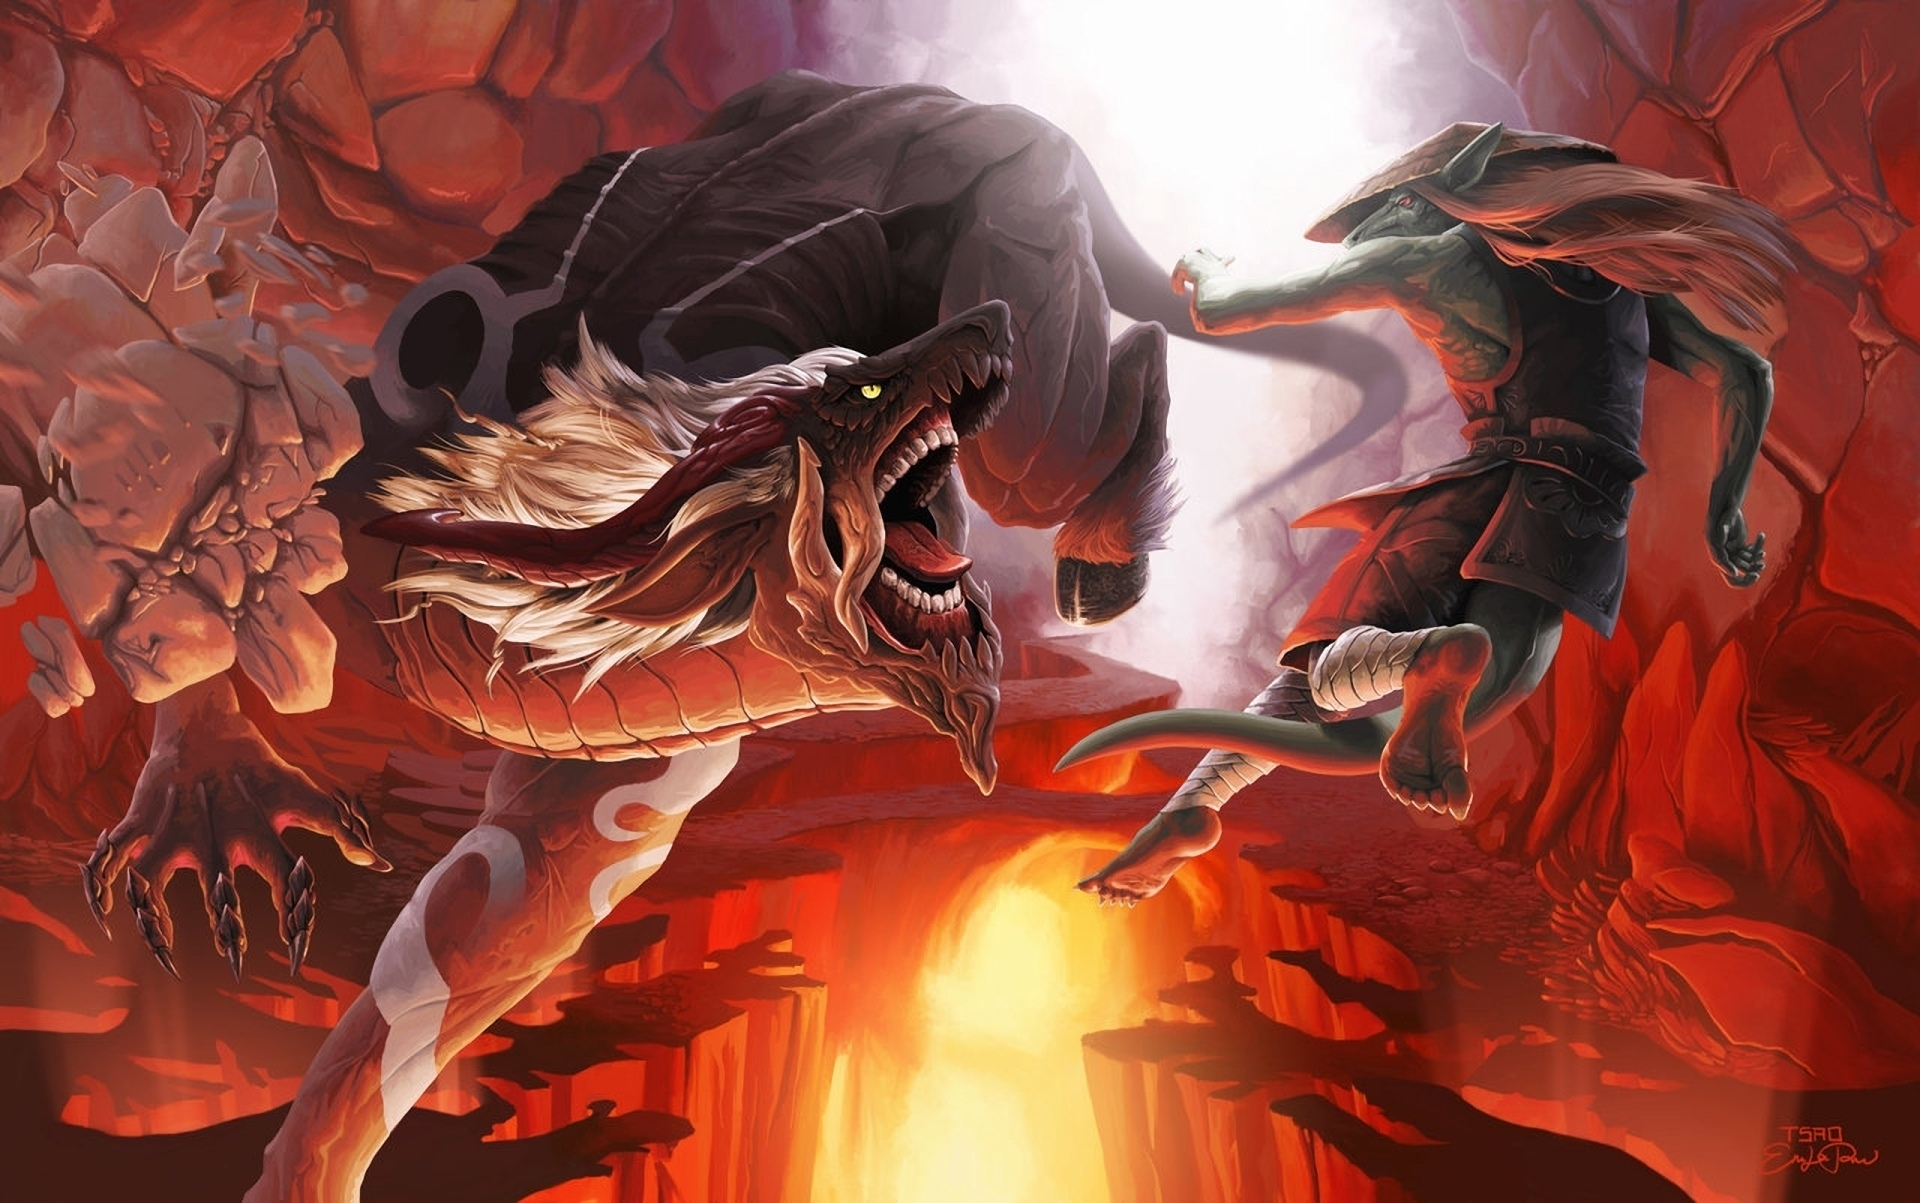 cave hat demon mouth rat tsaoshin monsters art tail battle stones